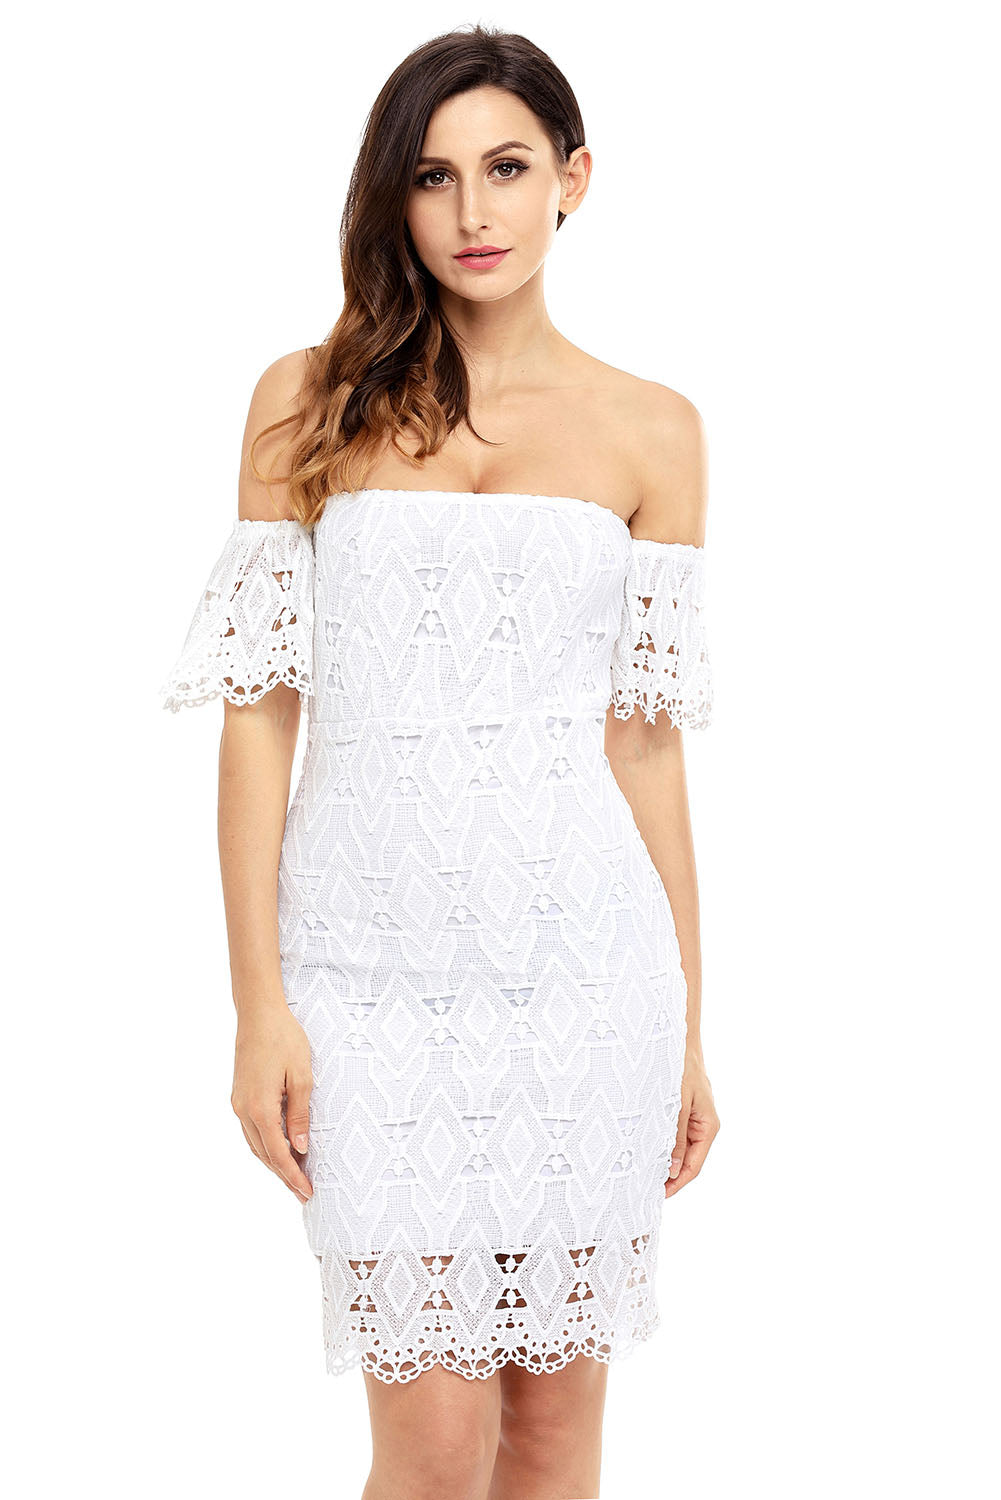 White Short Sleeve Off Shoulder Diamond Lace Bodycon Dress